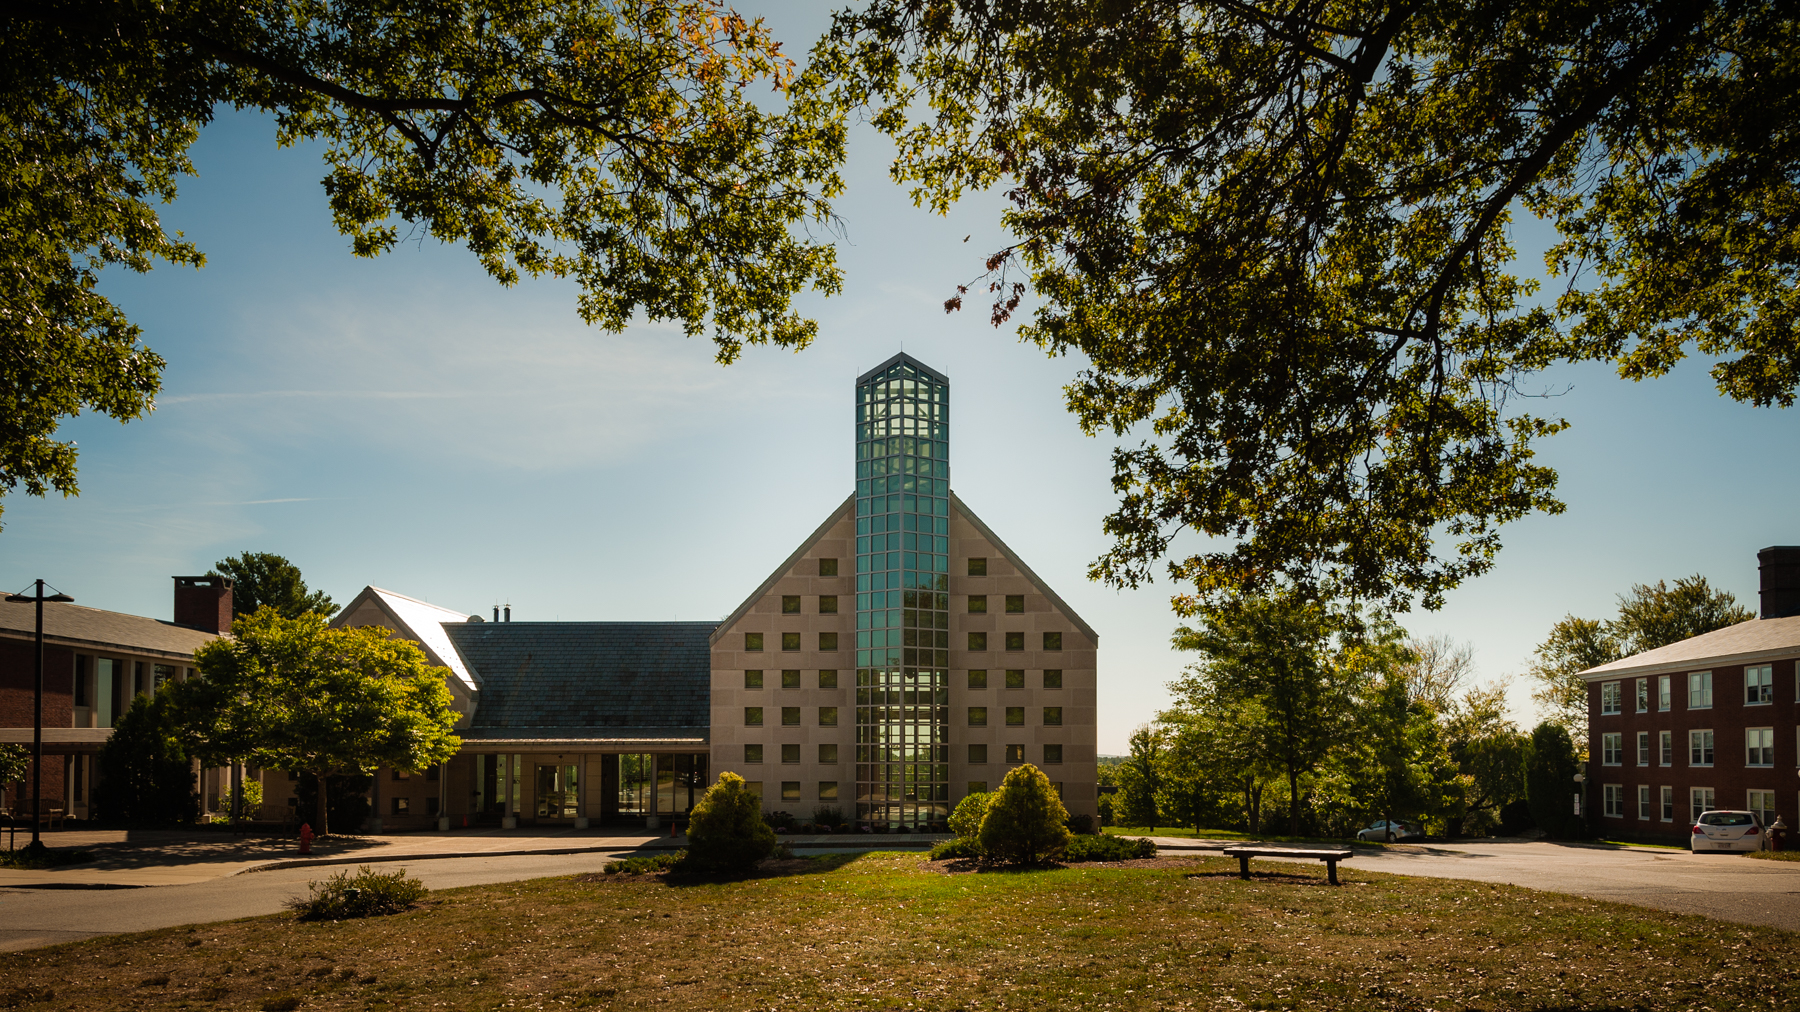 Andover Newton Theological School -